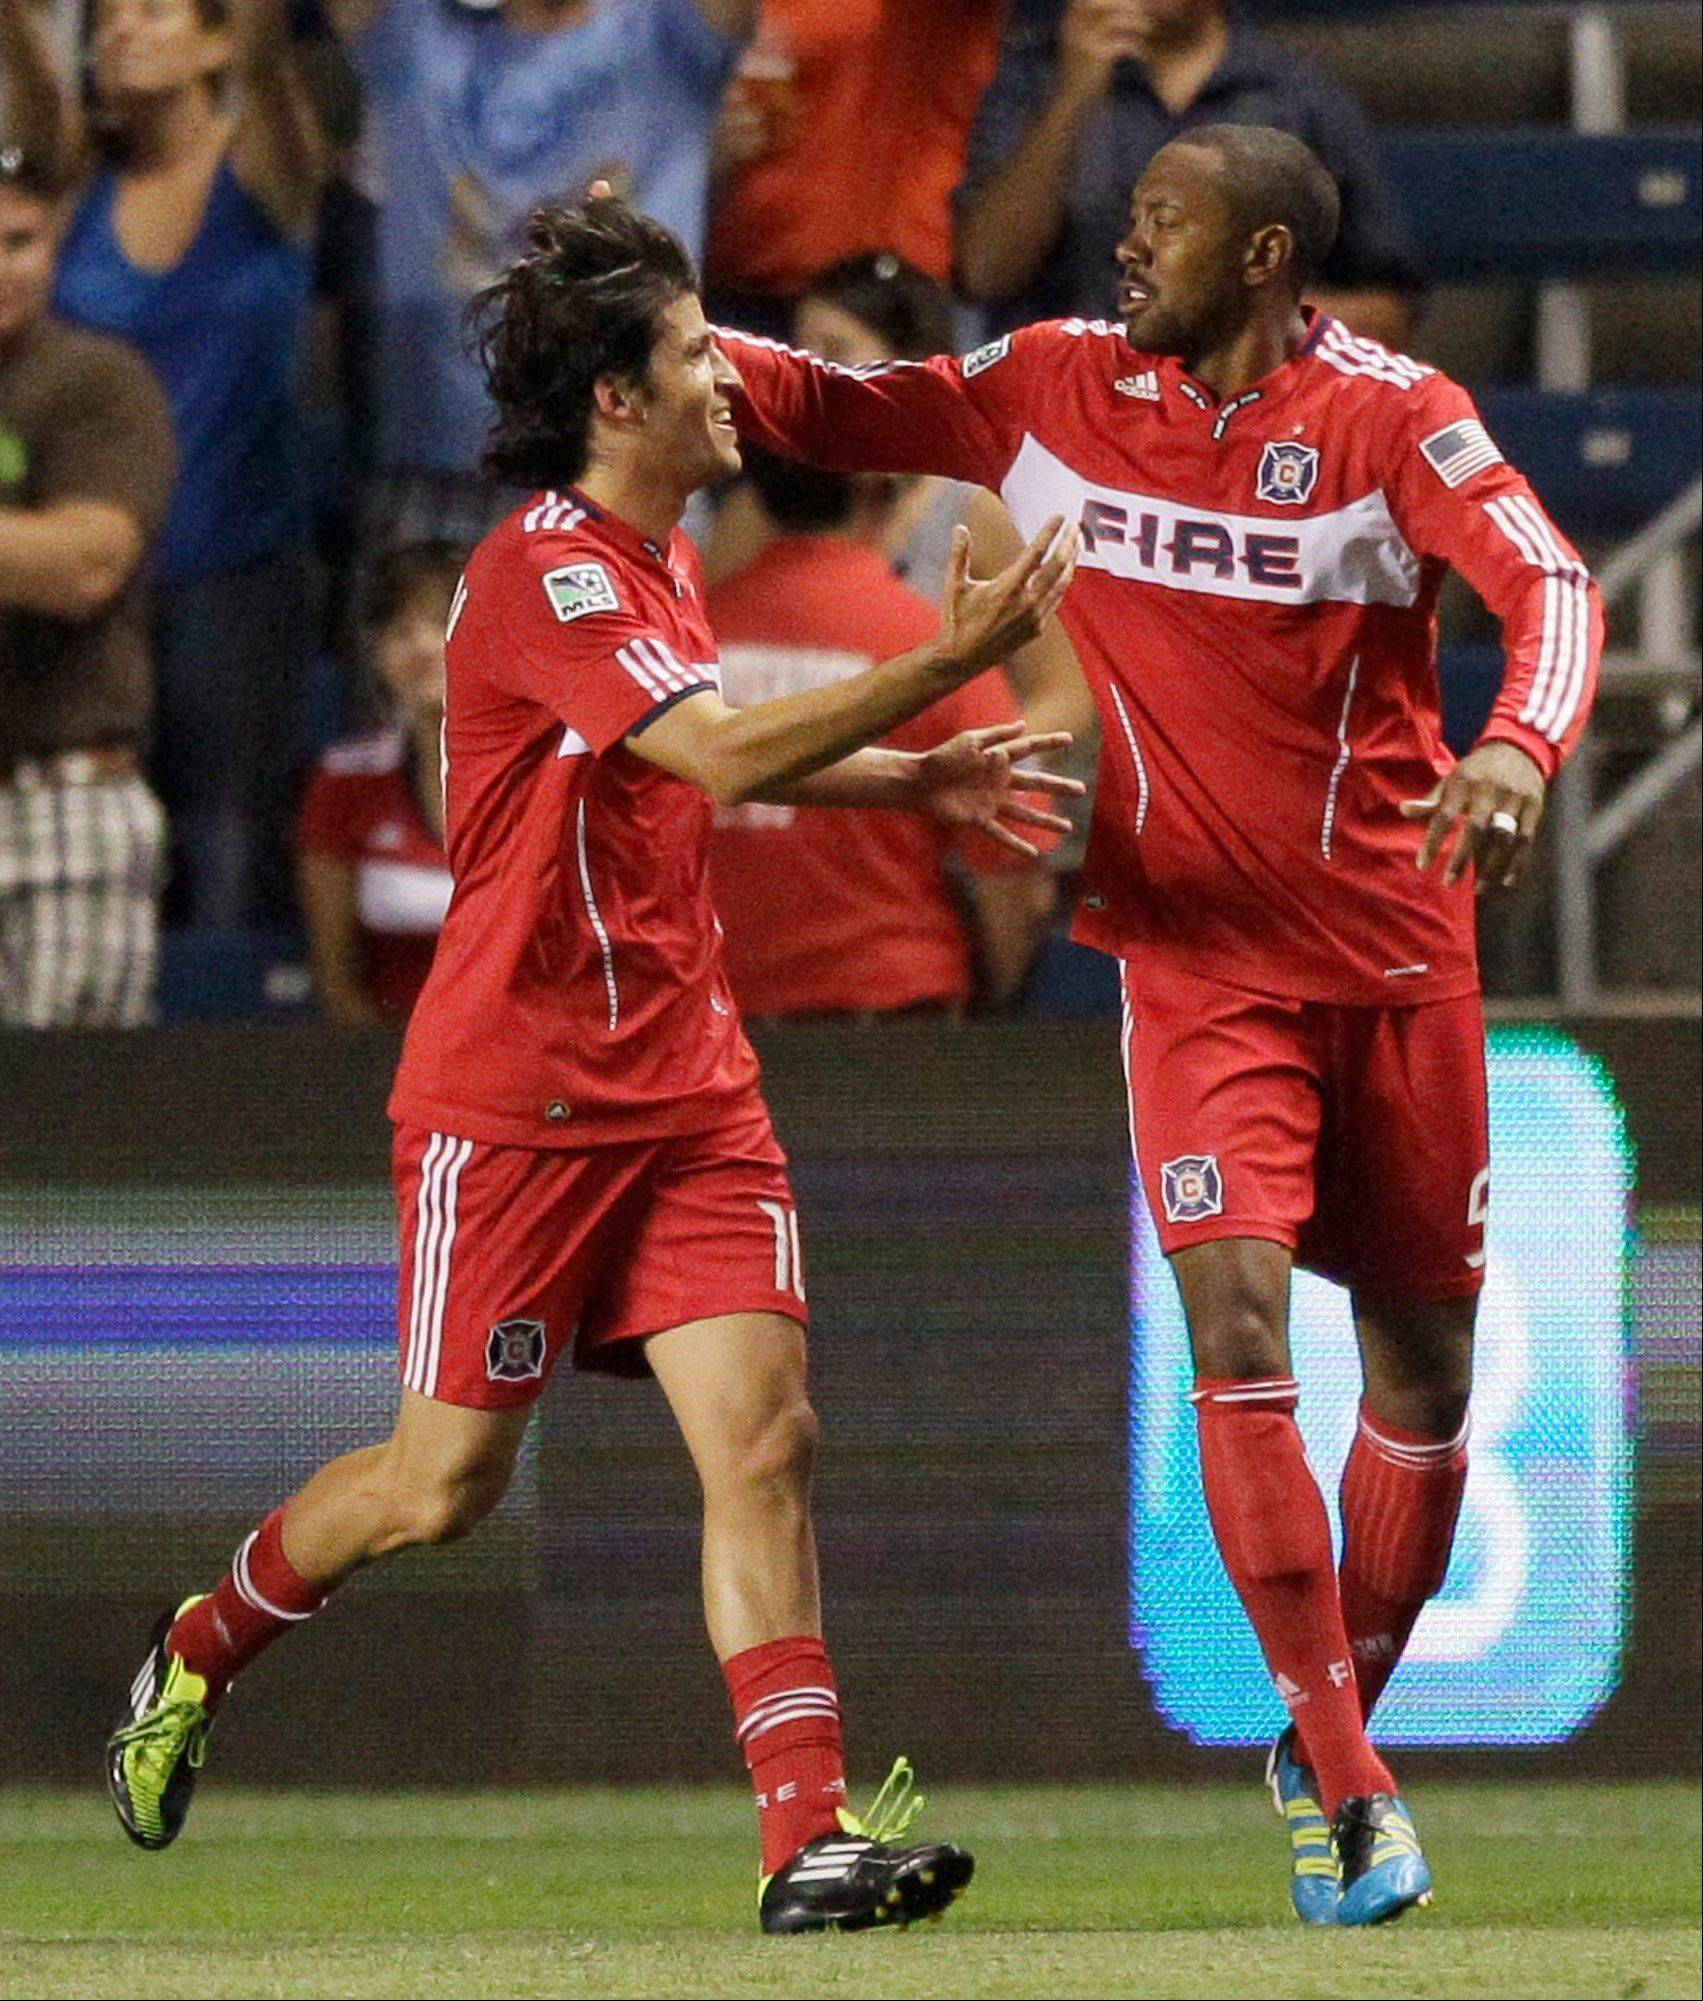 Chicago Fire's Cory Gibbs, right, celebrates with Sebastian Grazzini after a goal against the Colorado Rapids last season. Grazzini's contract is set to expire Saturday.